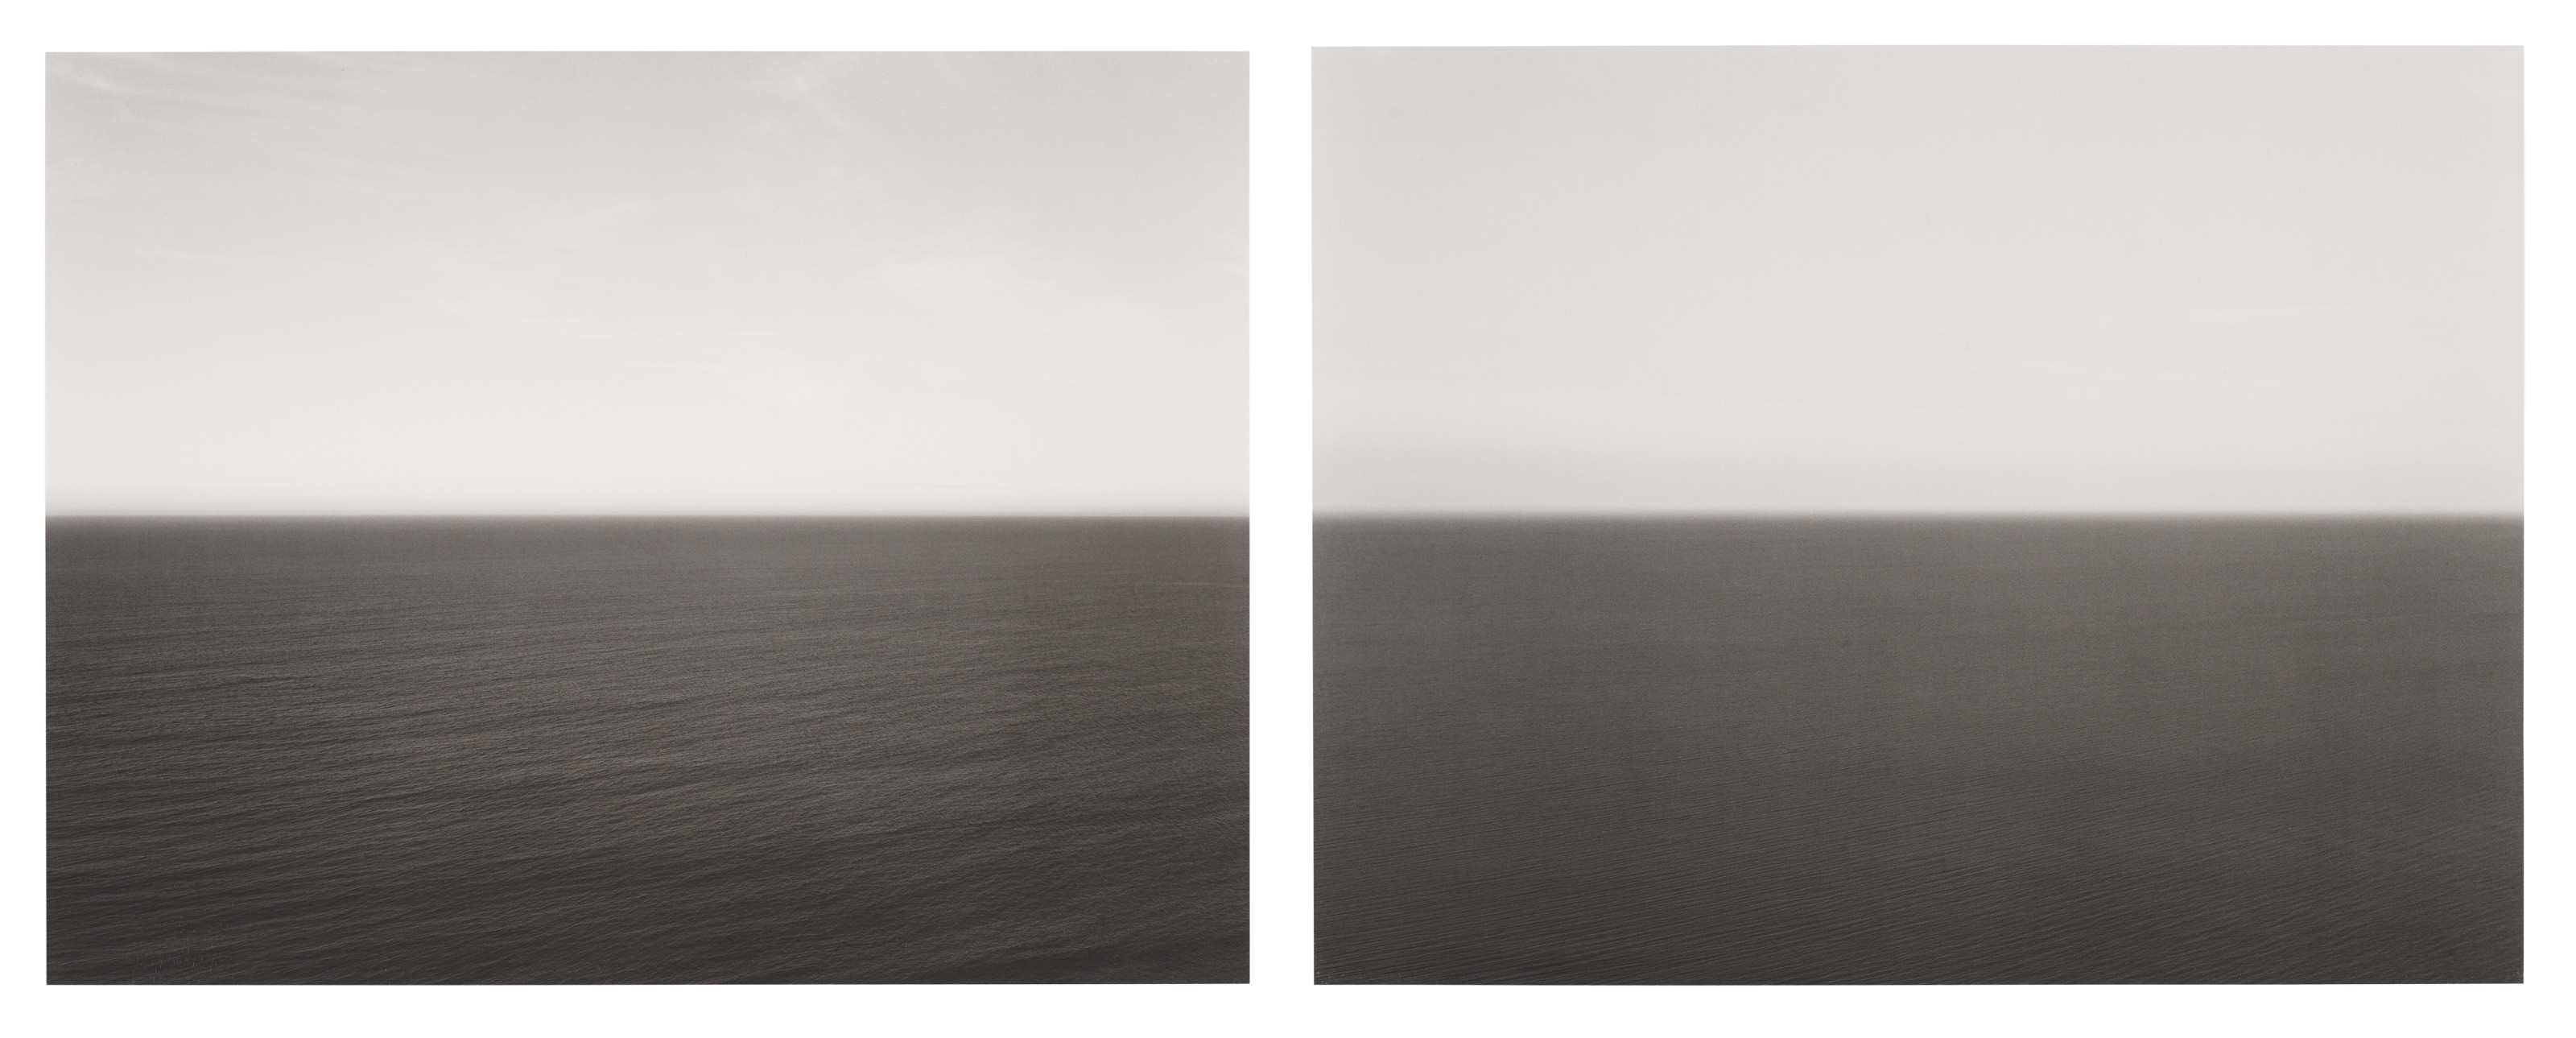 Hiroshi Sugimoto (b. 1948), Two selected prints from Time Exposed. Tasman Sea, Ngarupupu, 1990, Marmara Sea, Silivli, 1991, 1989. Two offset lithographs, each mounted on card. Each imagesheet 9½ x 12¼ in (24.1 x 31.1 cm). Estimate $2,000-3,000. Offered in Photographson 6 April 2021 at Christie's in New York